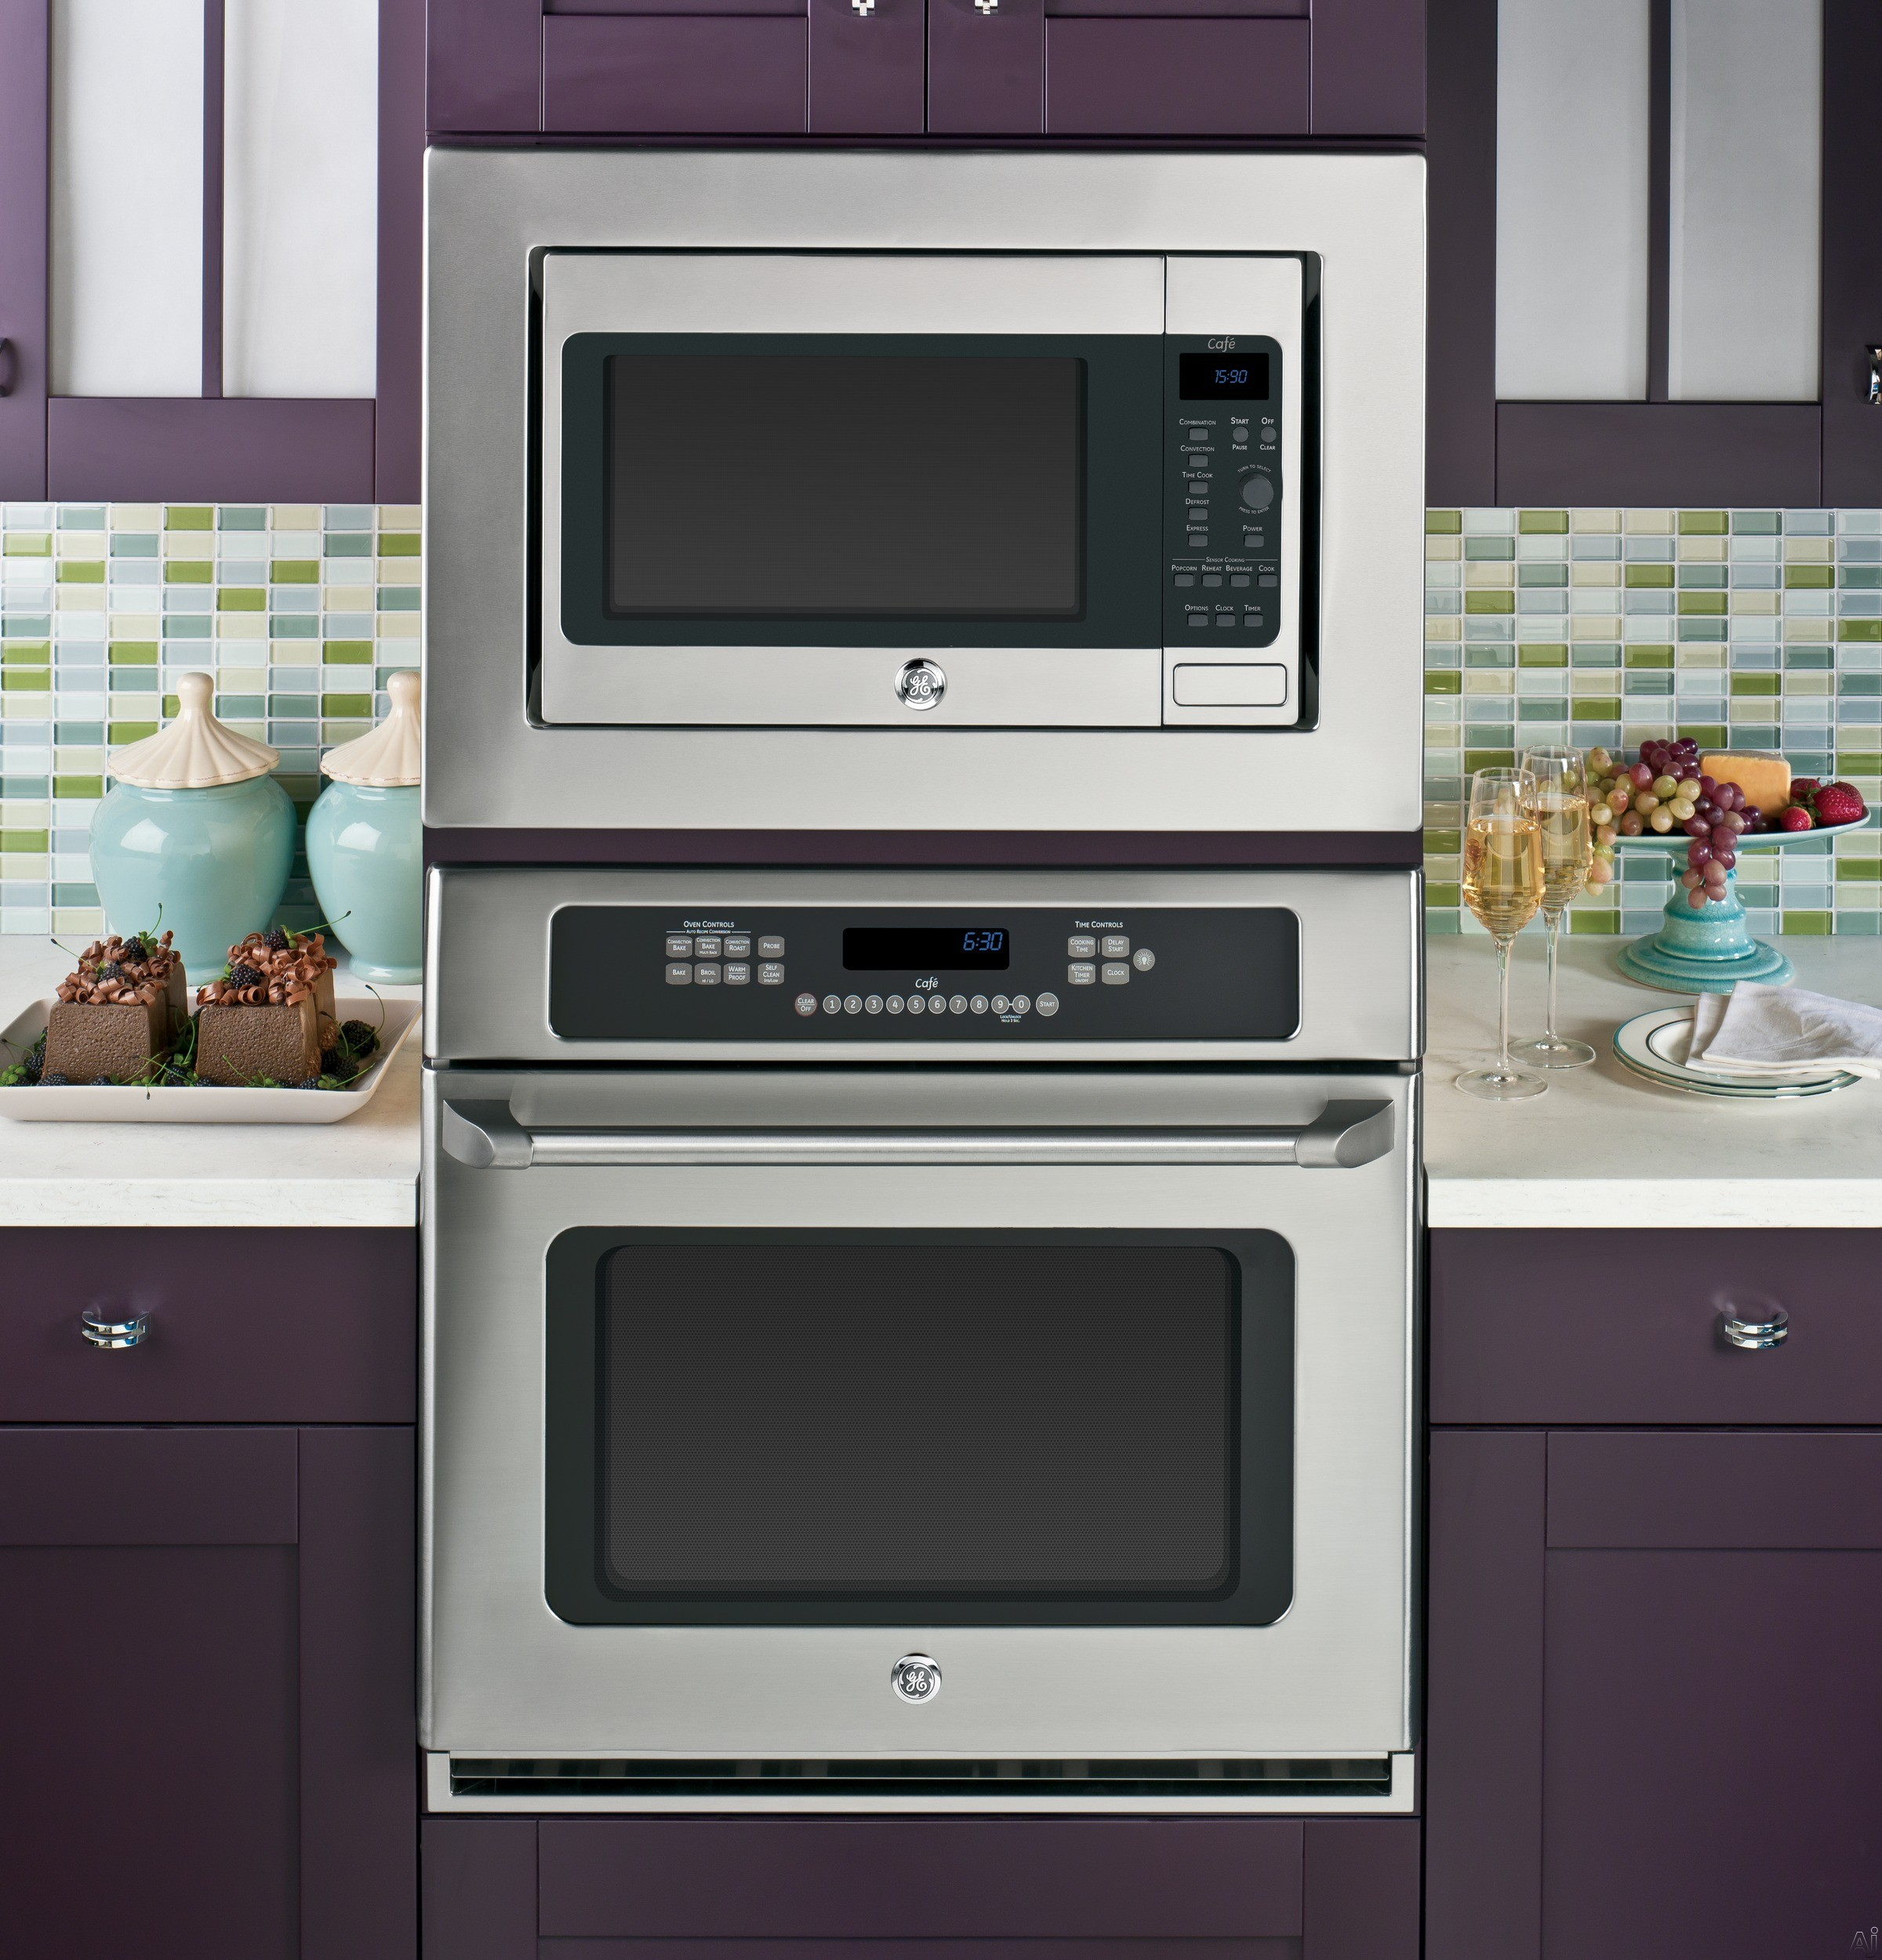 ... Appliances > Microwave Ovens > Countertop Microwaves > CEB1590SSSS